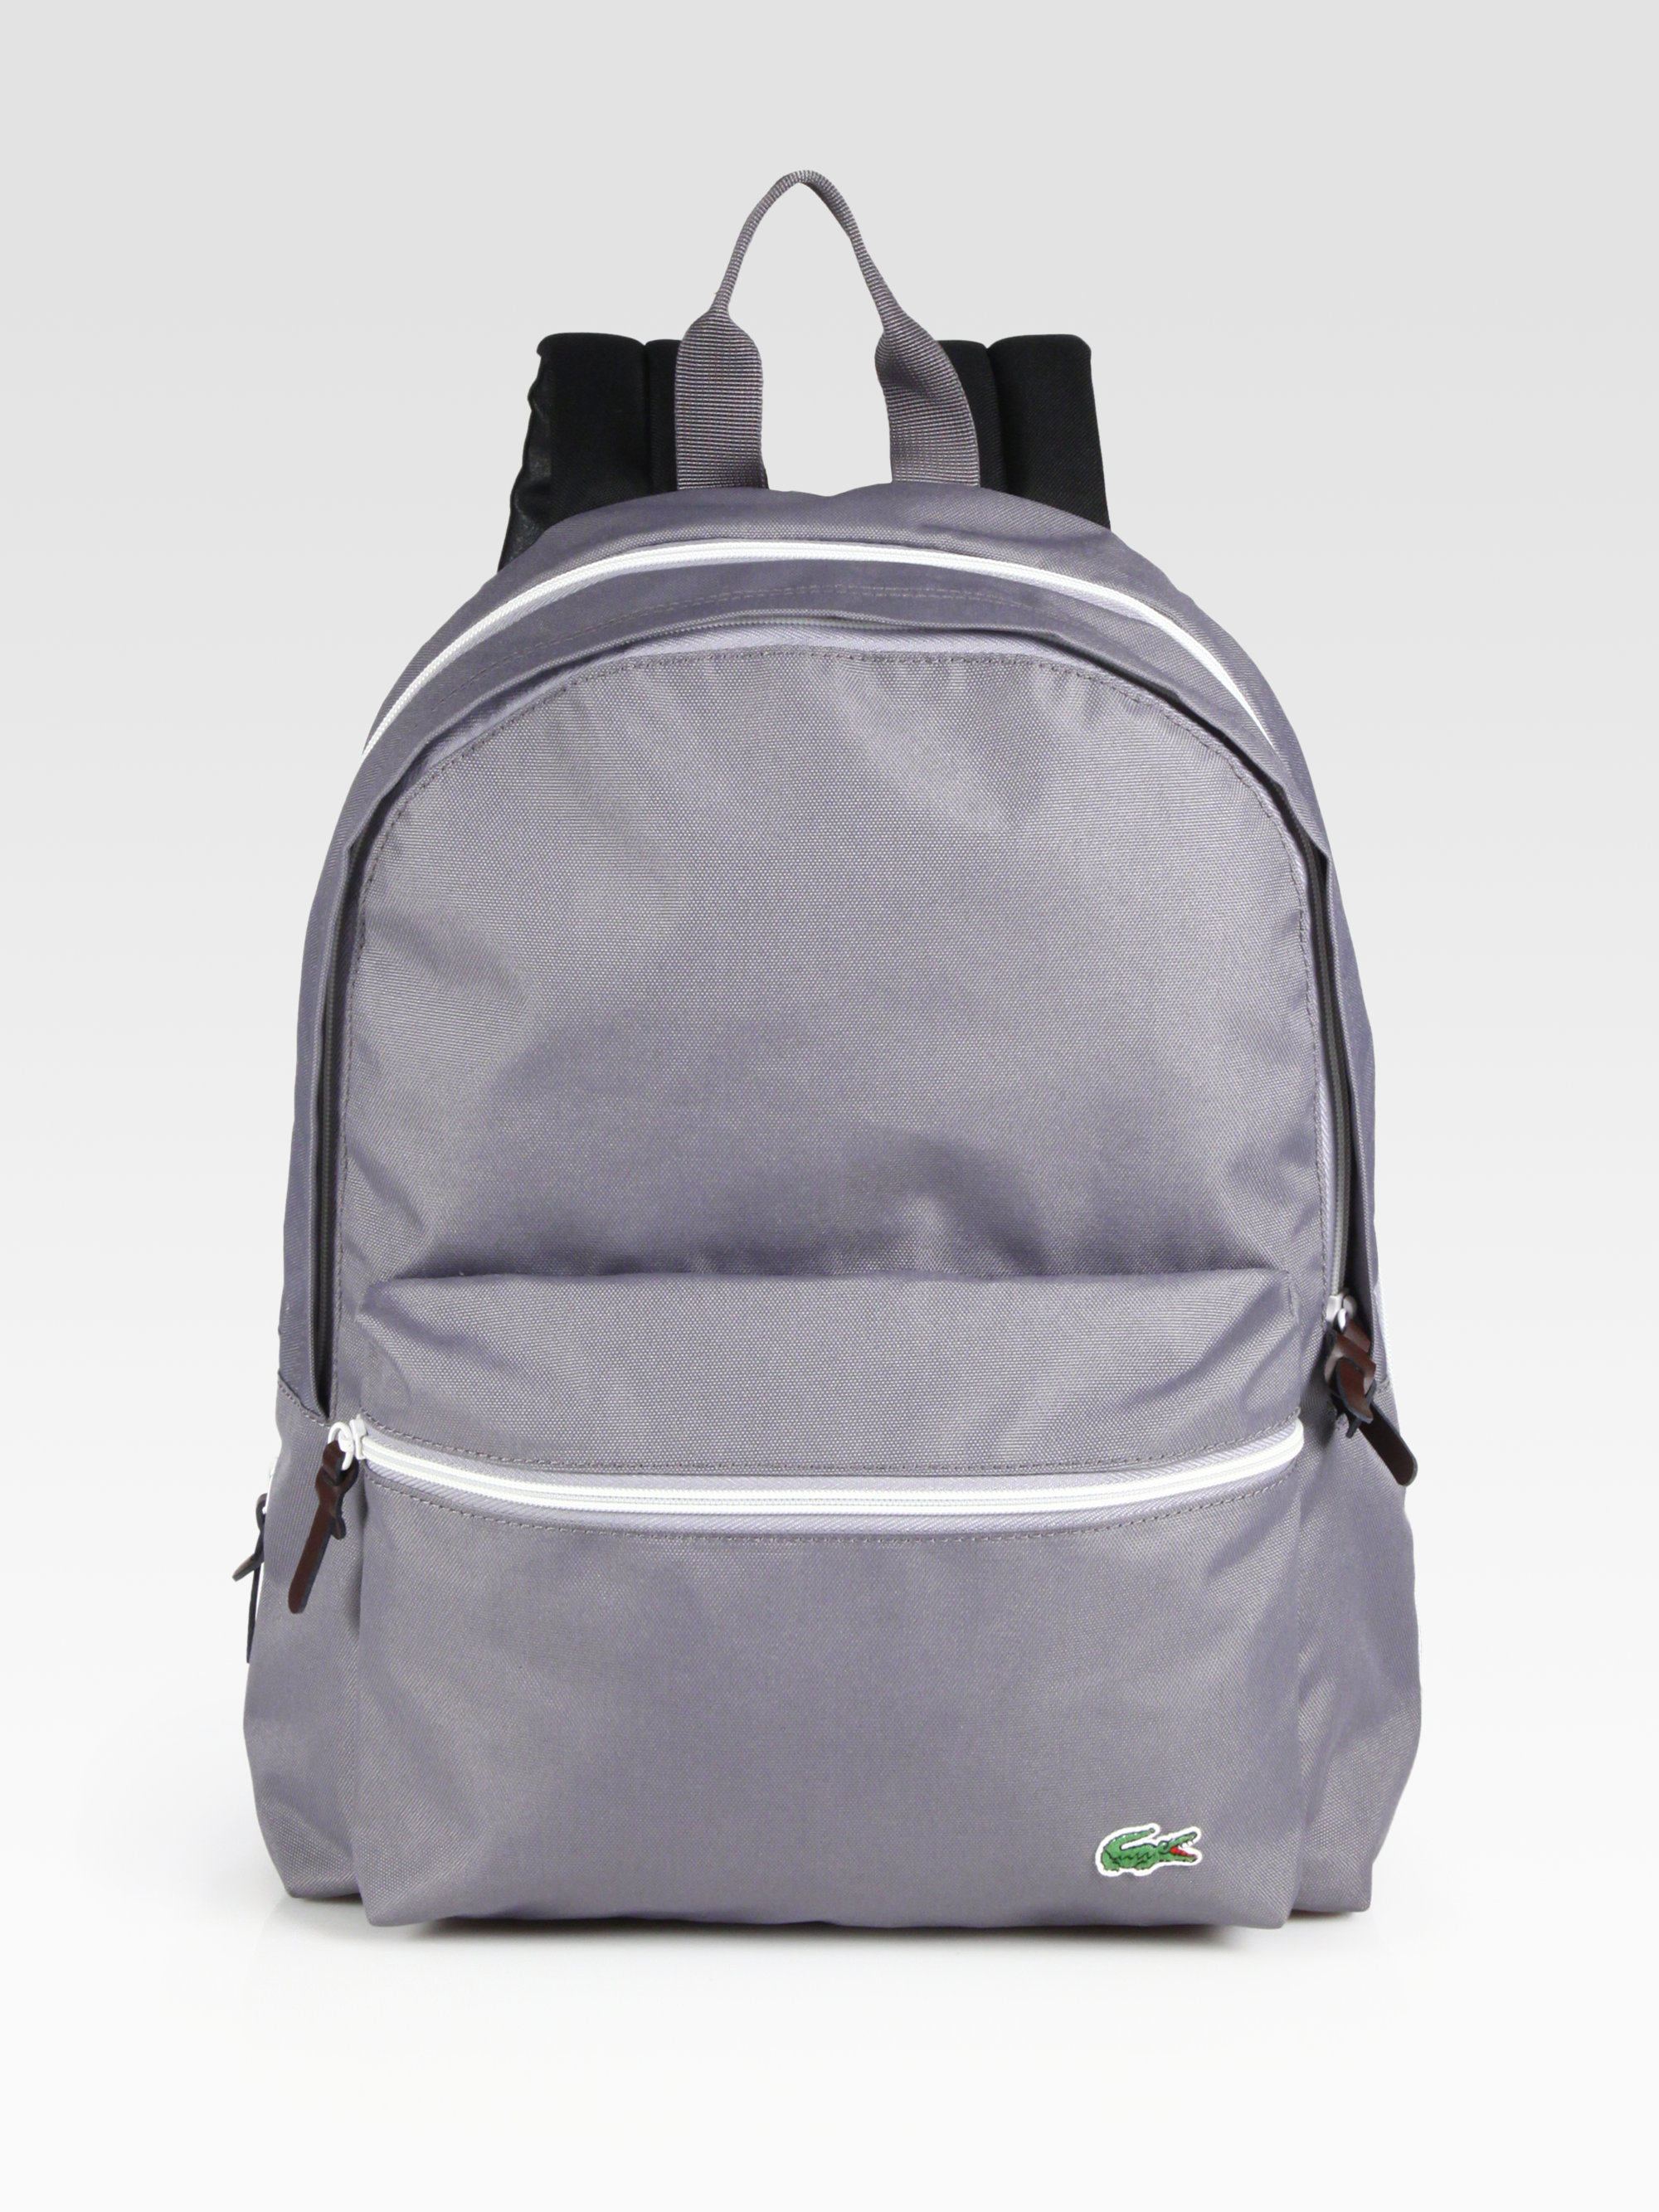 315159bbae Lacoste Backcroc Medium Backpack in Gray for Men - Lyst